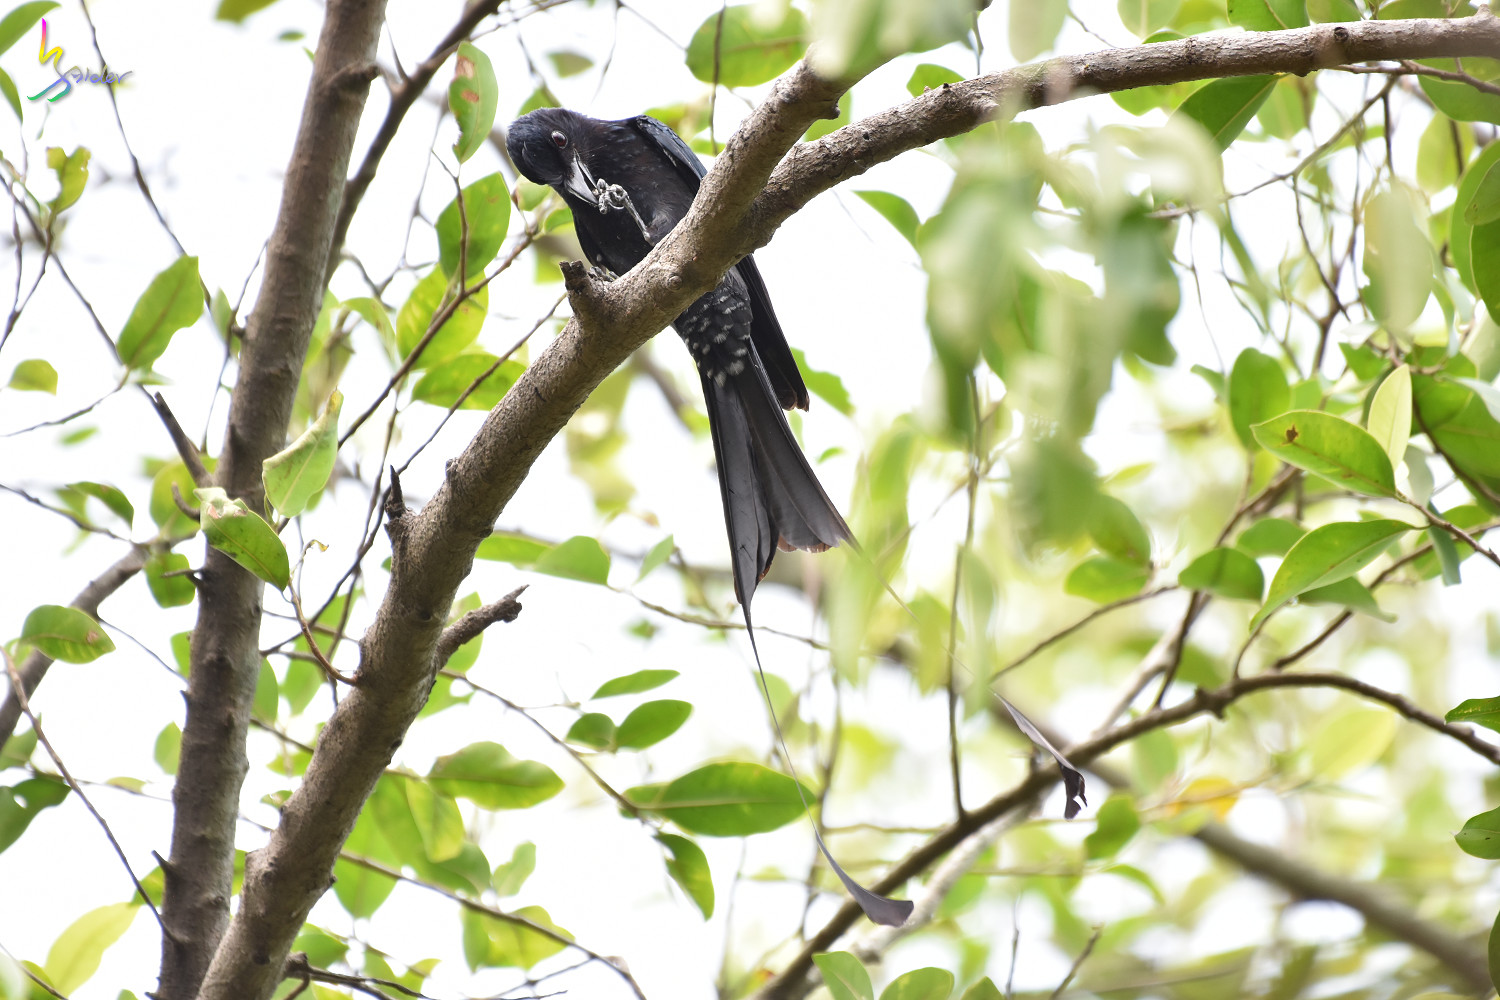 Greater_Racket-tailed_Drongo_1326